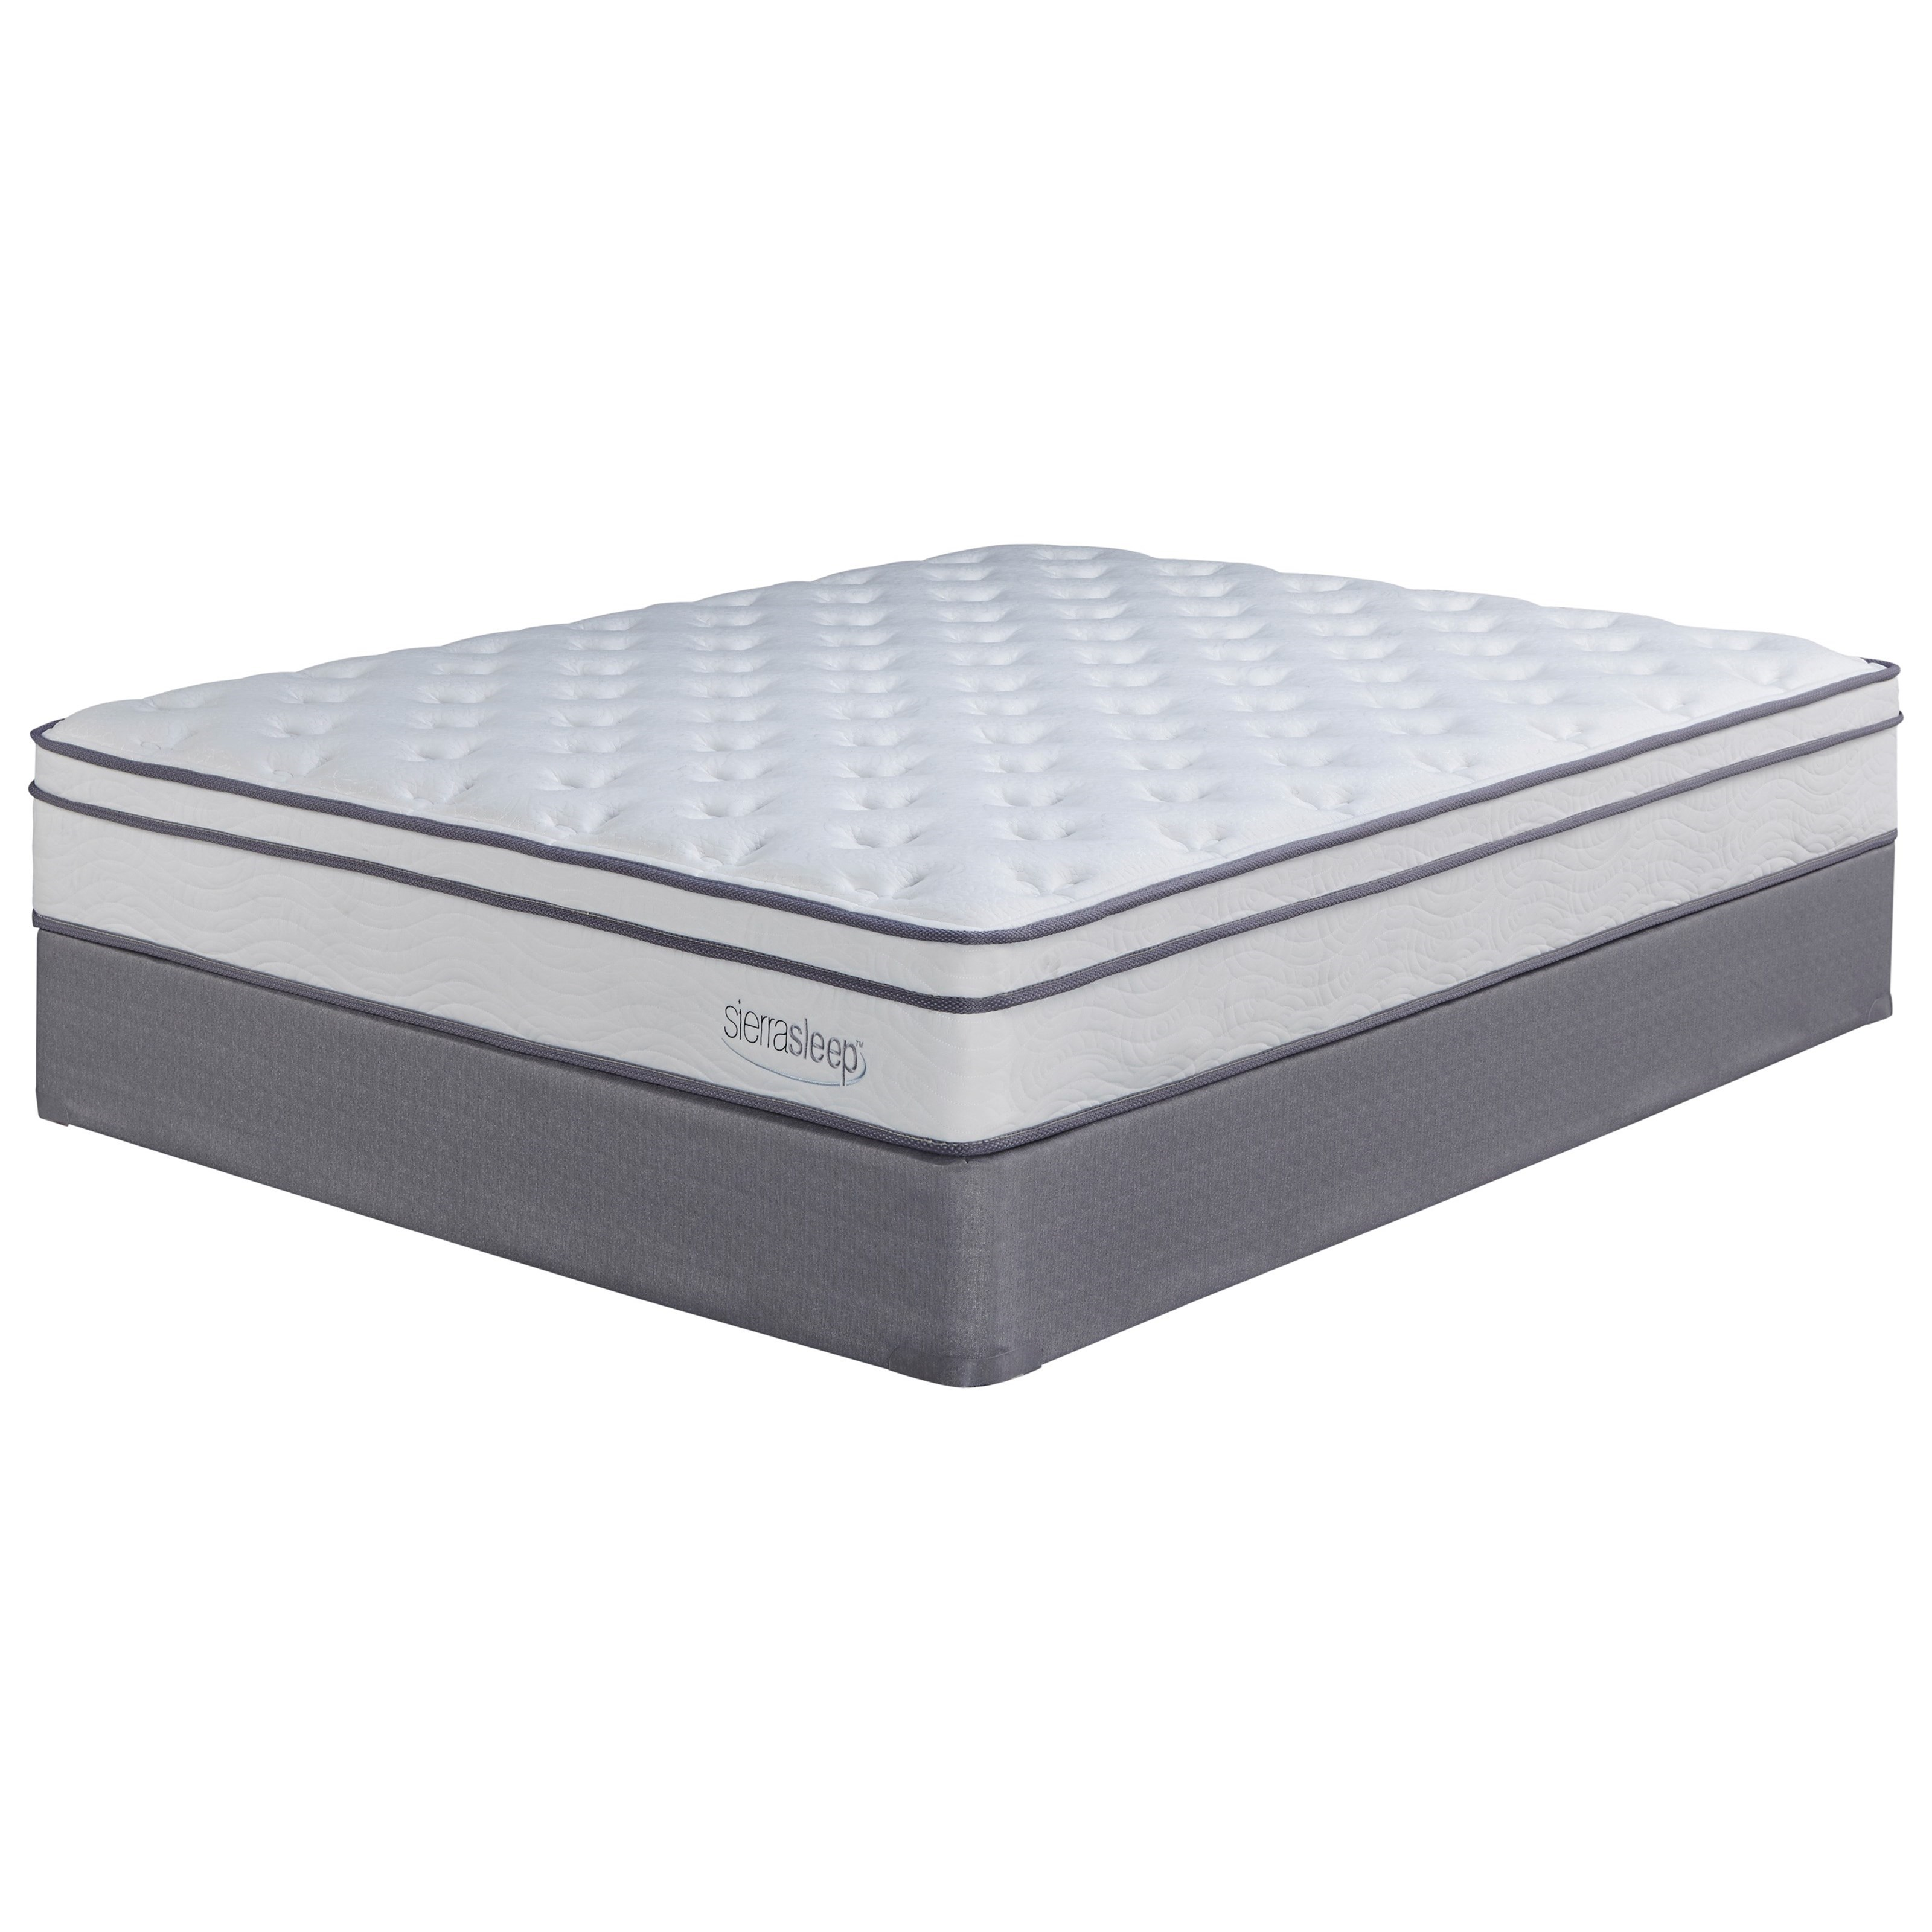 Sierra Sleep Longs Peak Limited King Plush Mattress Set - Item Number: M90741+M81X42